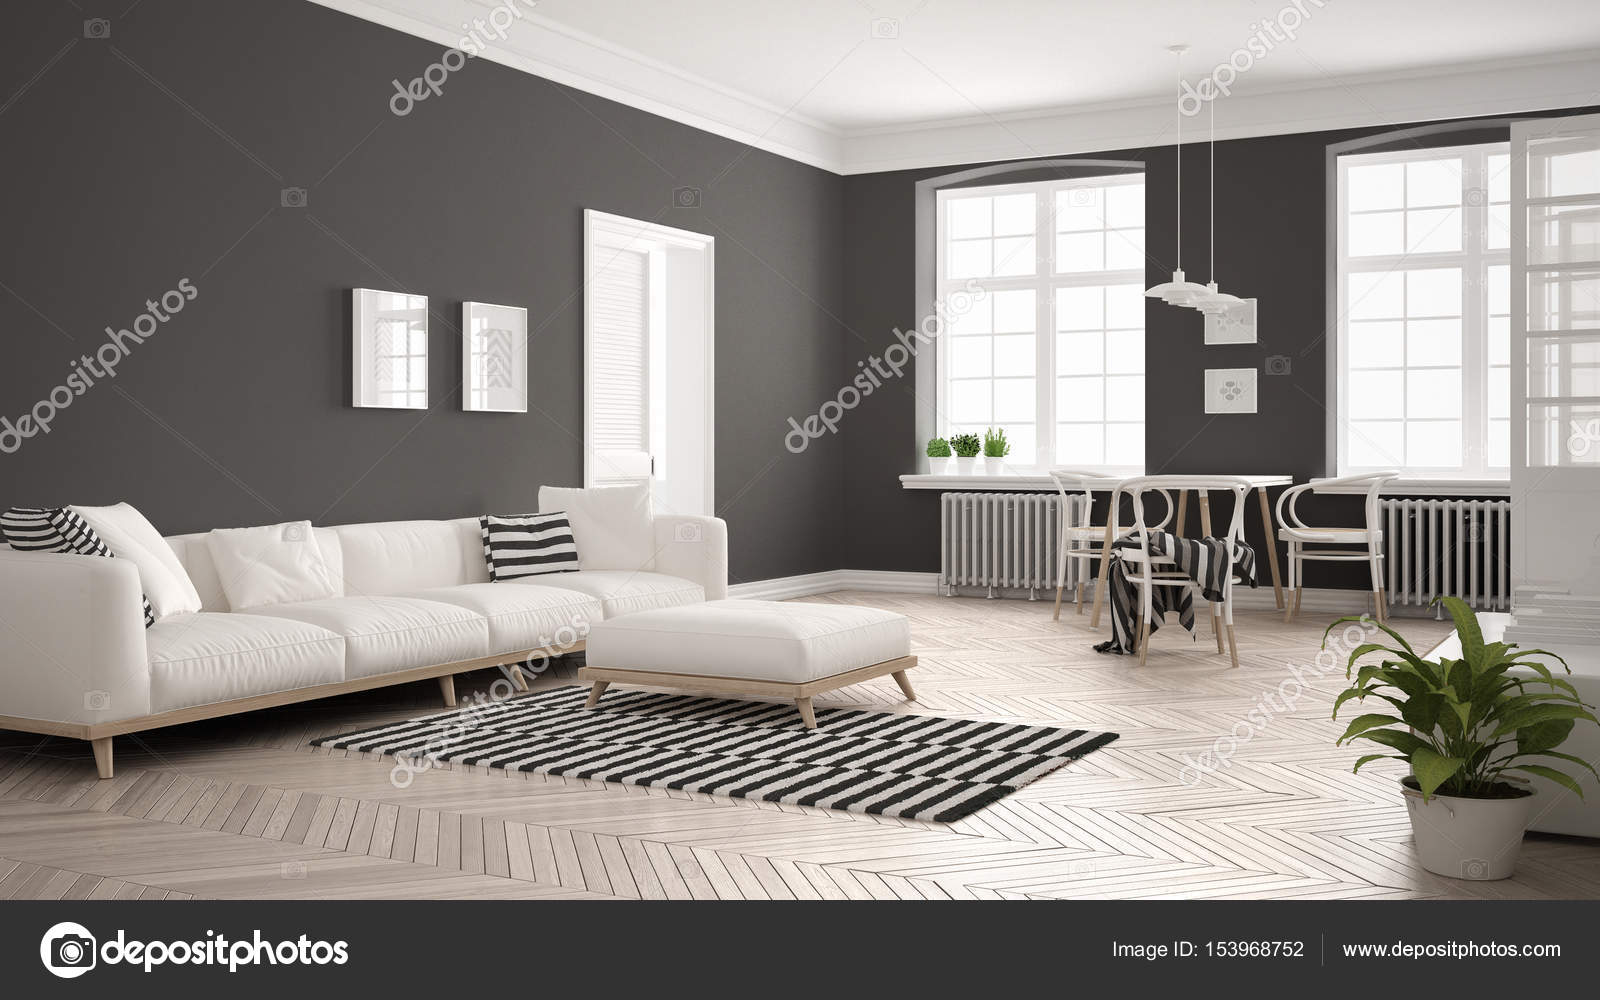 Bright Minimalist Living Room With Sofa And Dining Table